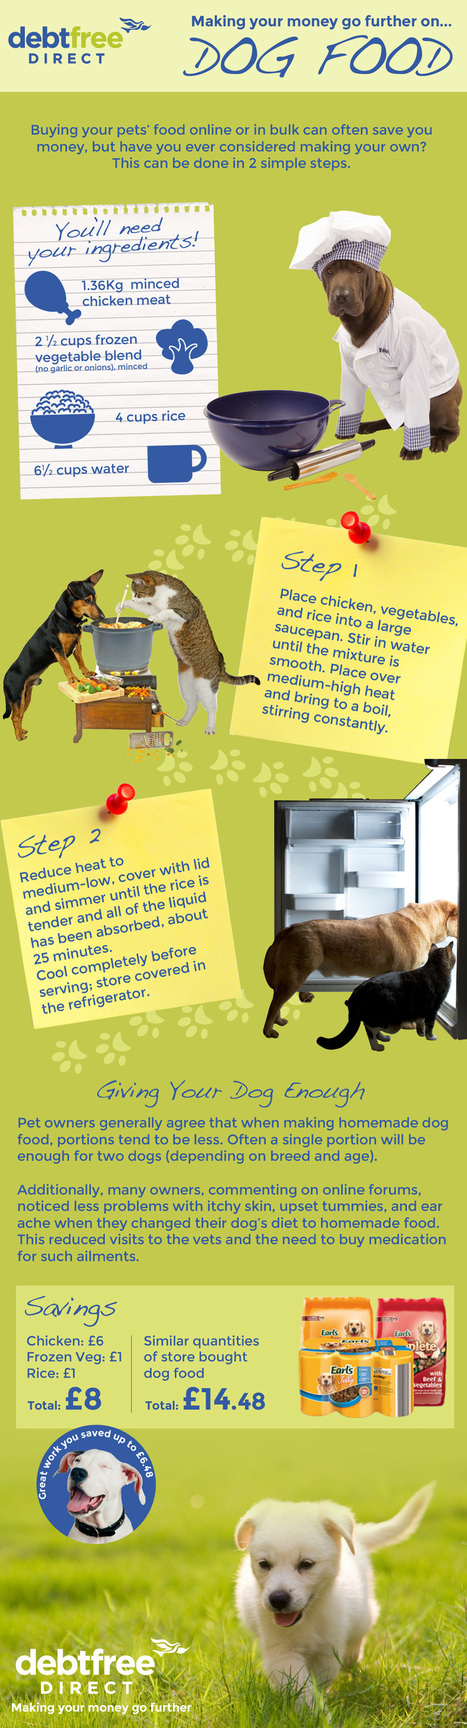 Save Money on Dog Food - Make Your Own! [Infographic] - Pet Business Blueprint | Pet Business Blueprint | Scoop.it